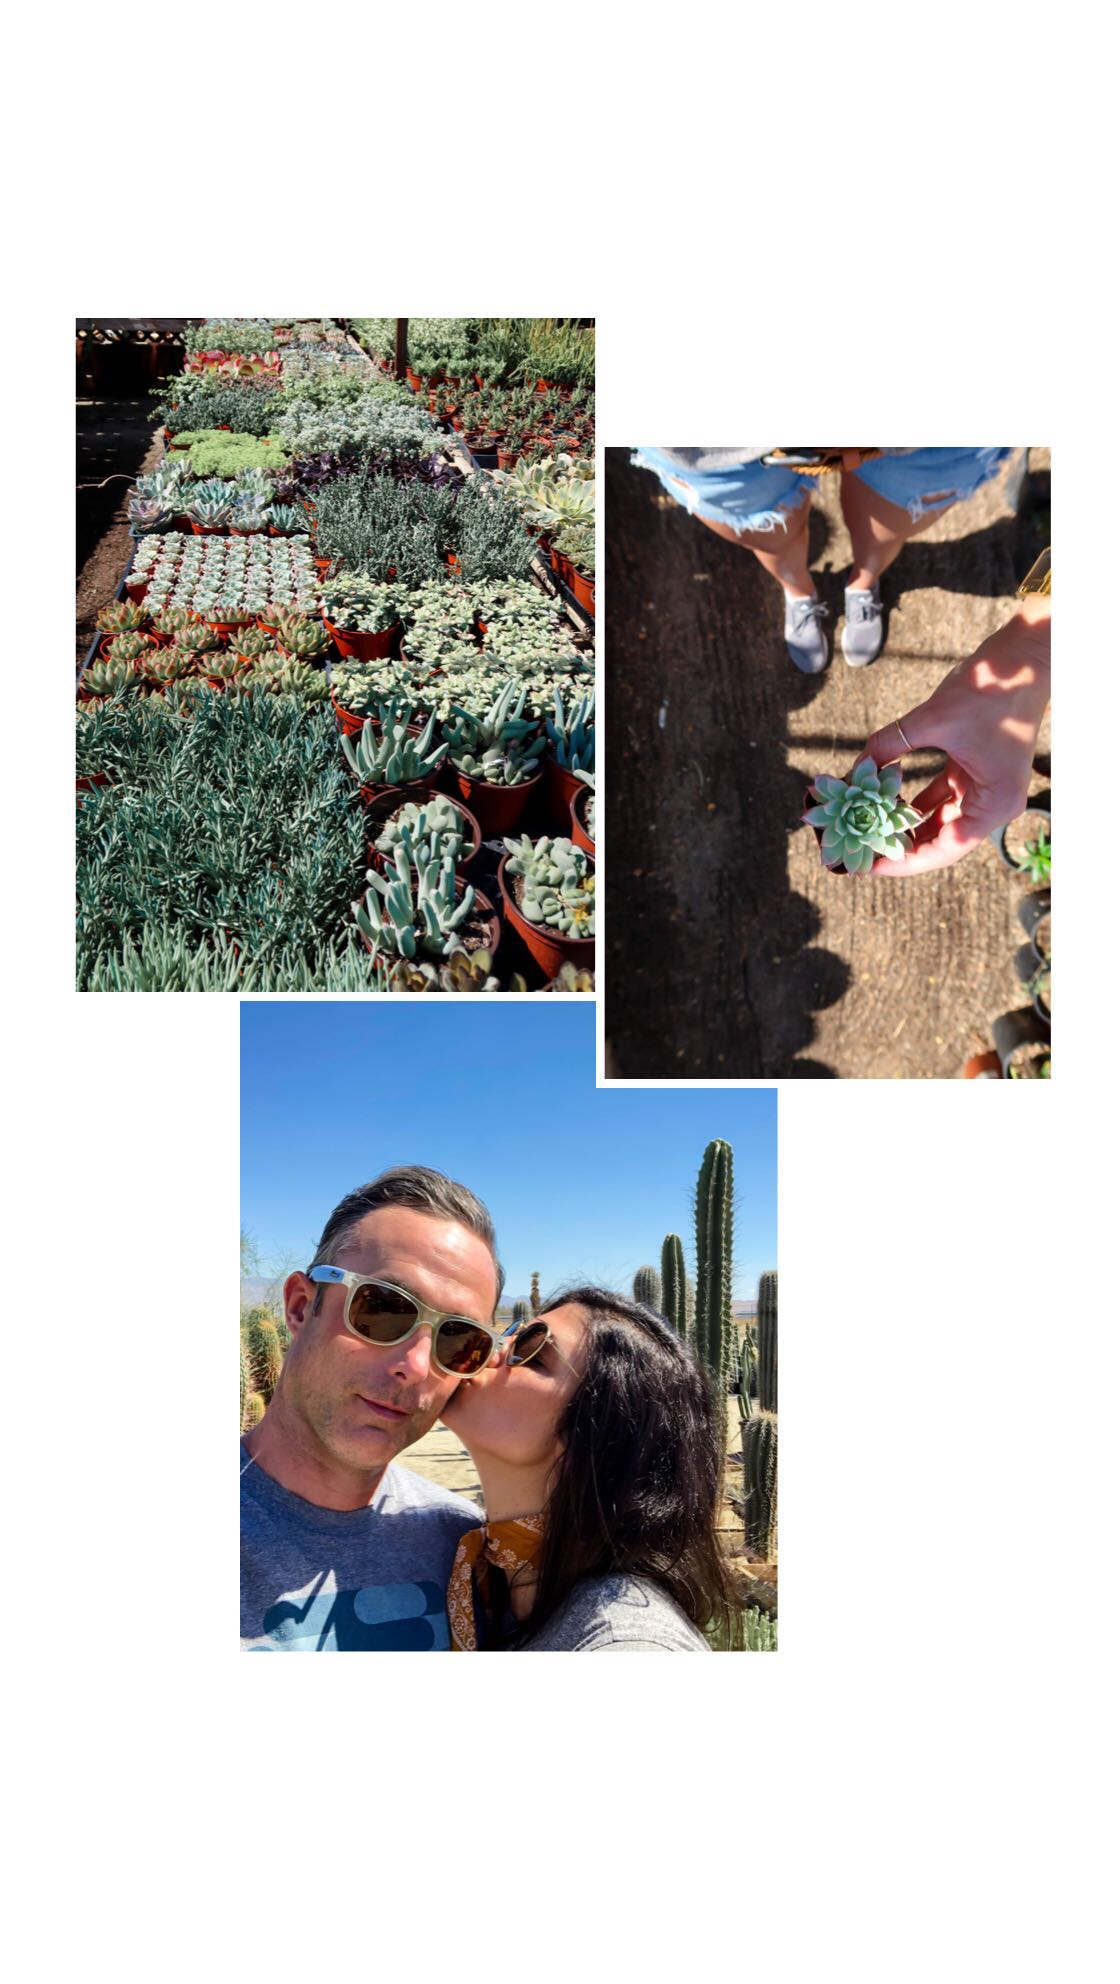 mariscal cactus & succulents - Lauren Schwaiger - Palm Springs photo diary